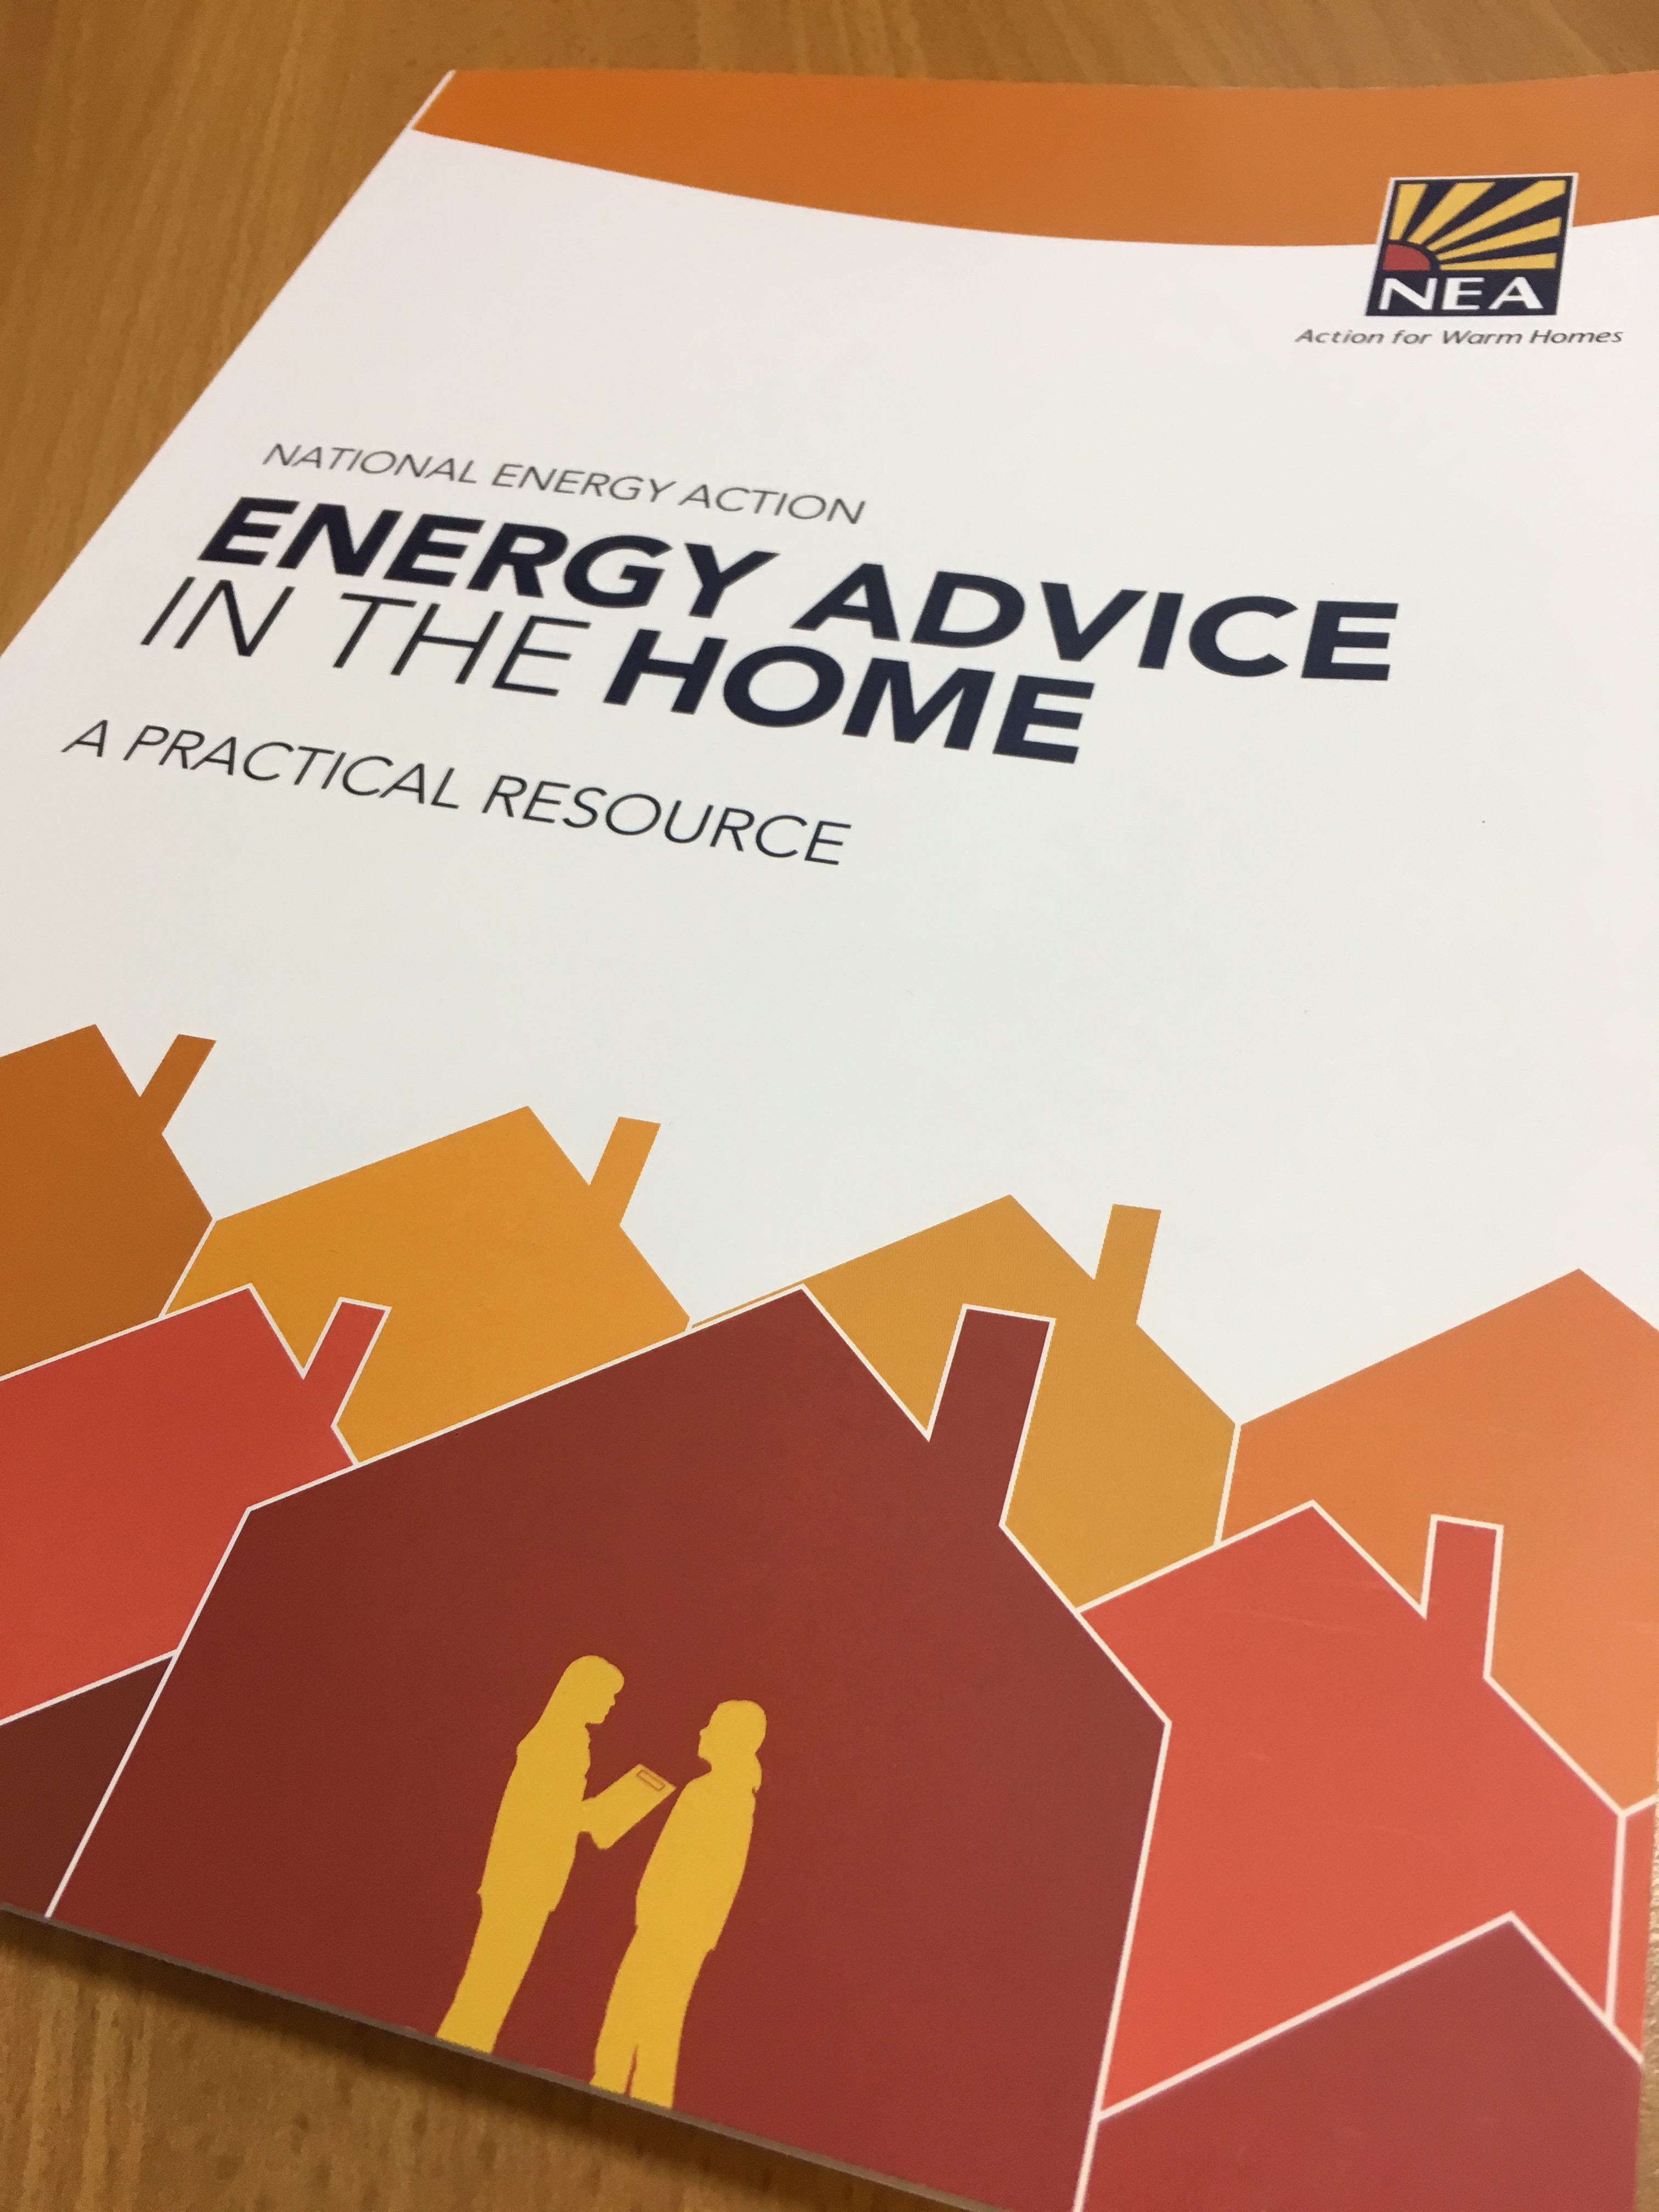 Energy Advice in the Home booklet